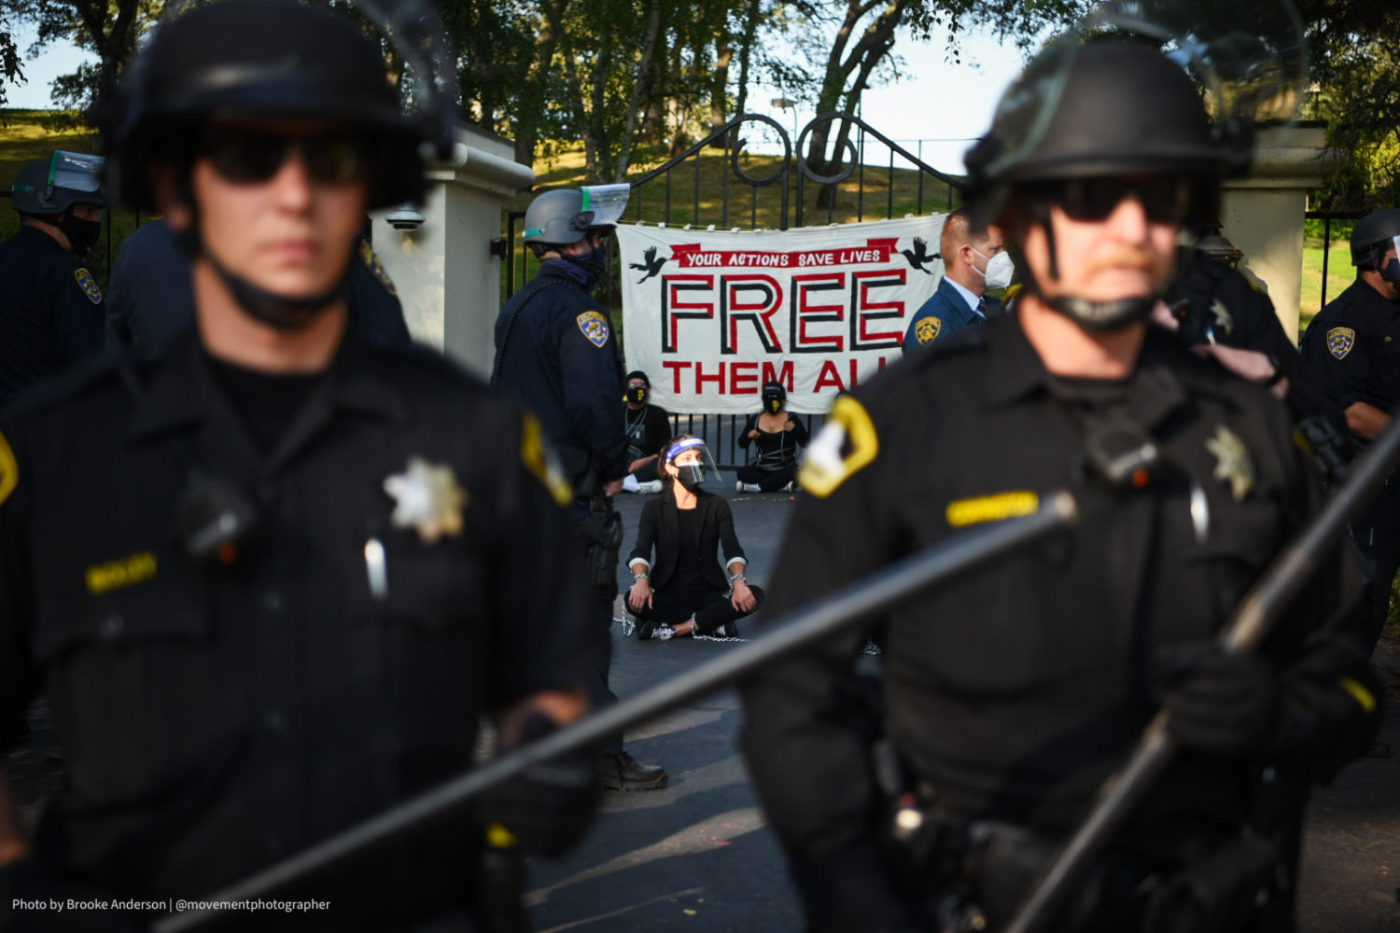 Cops-block-gate-to-Newsoms-mansion-while-protesters-demand-freedom-for-prisoners-detainees-072720-by-Brooke-Anderson-1400x933, Protesters at Gov. Newsom's mansion demand he save the lives of incarcerated people – 14 arrested, Local News & Views